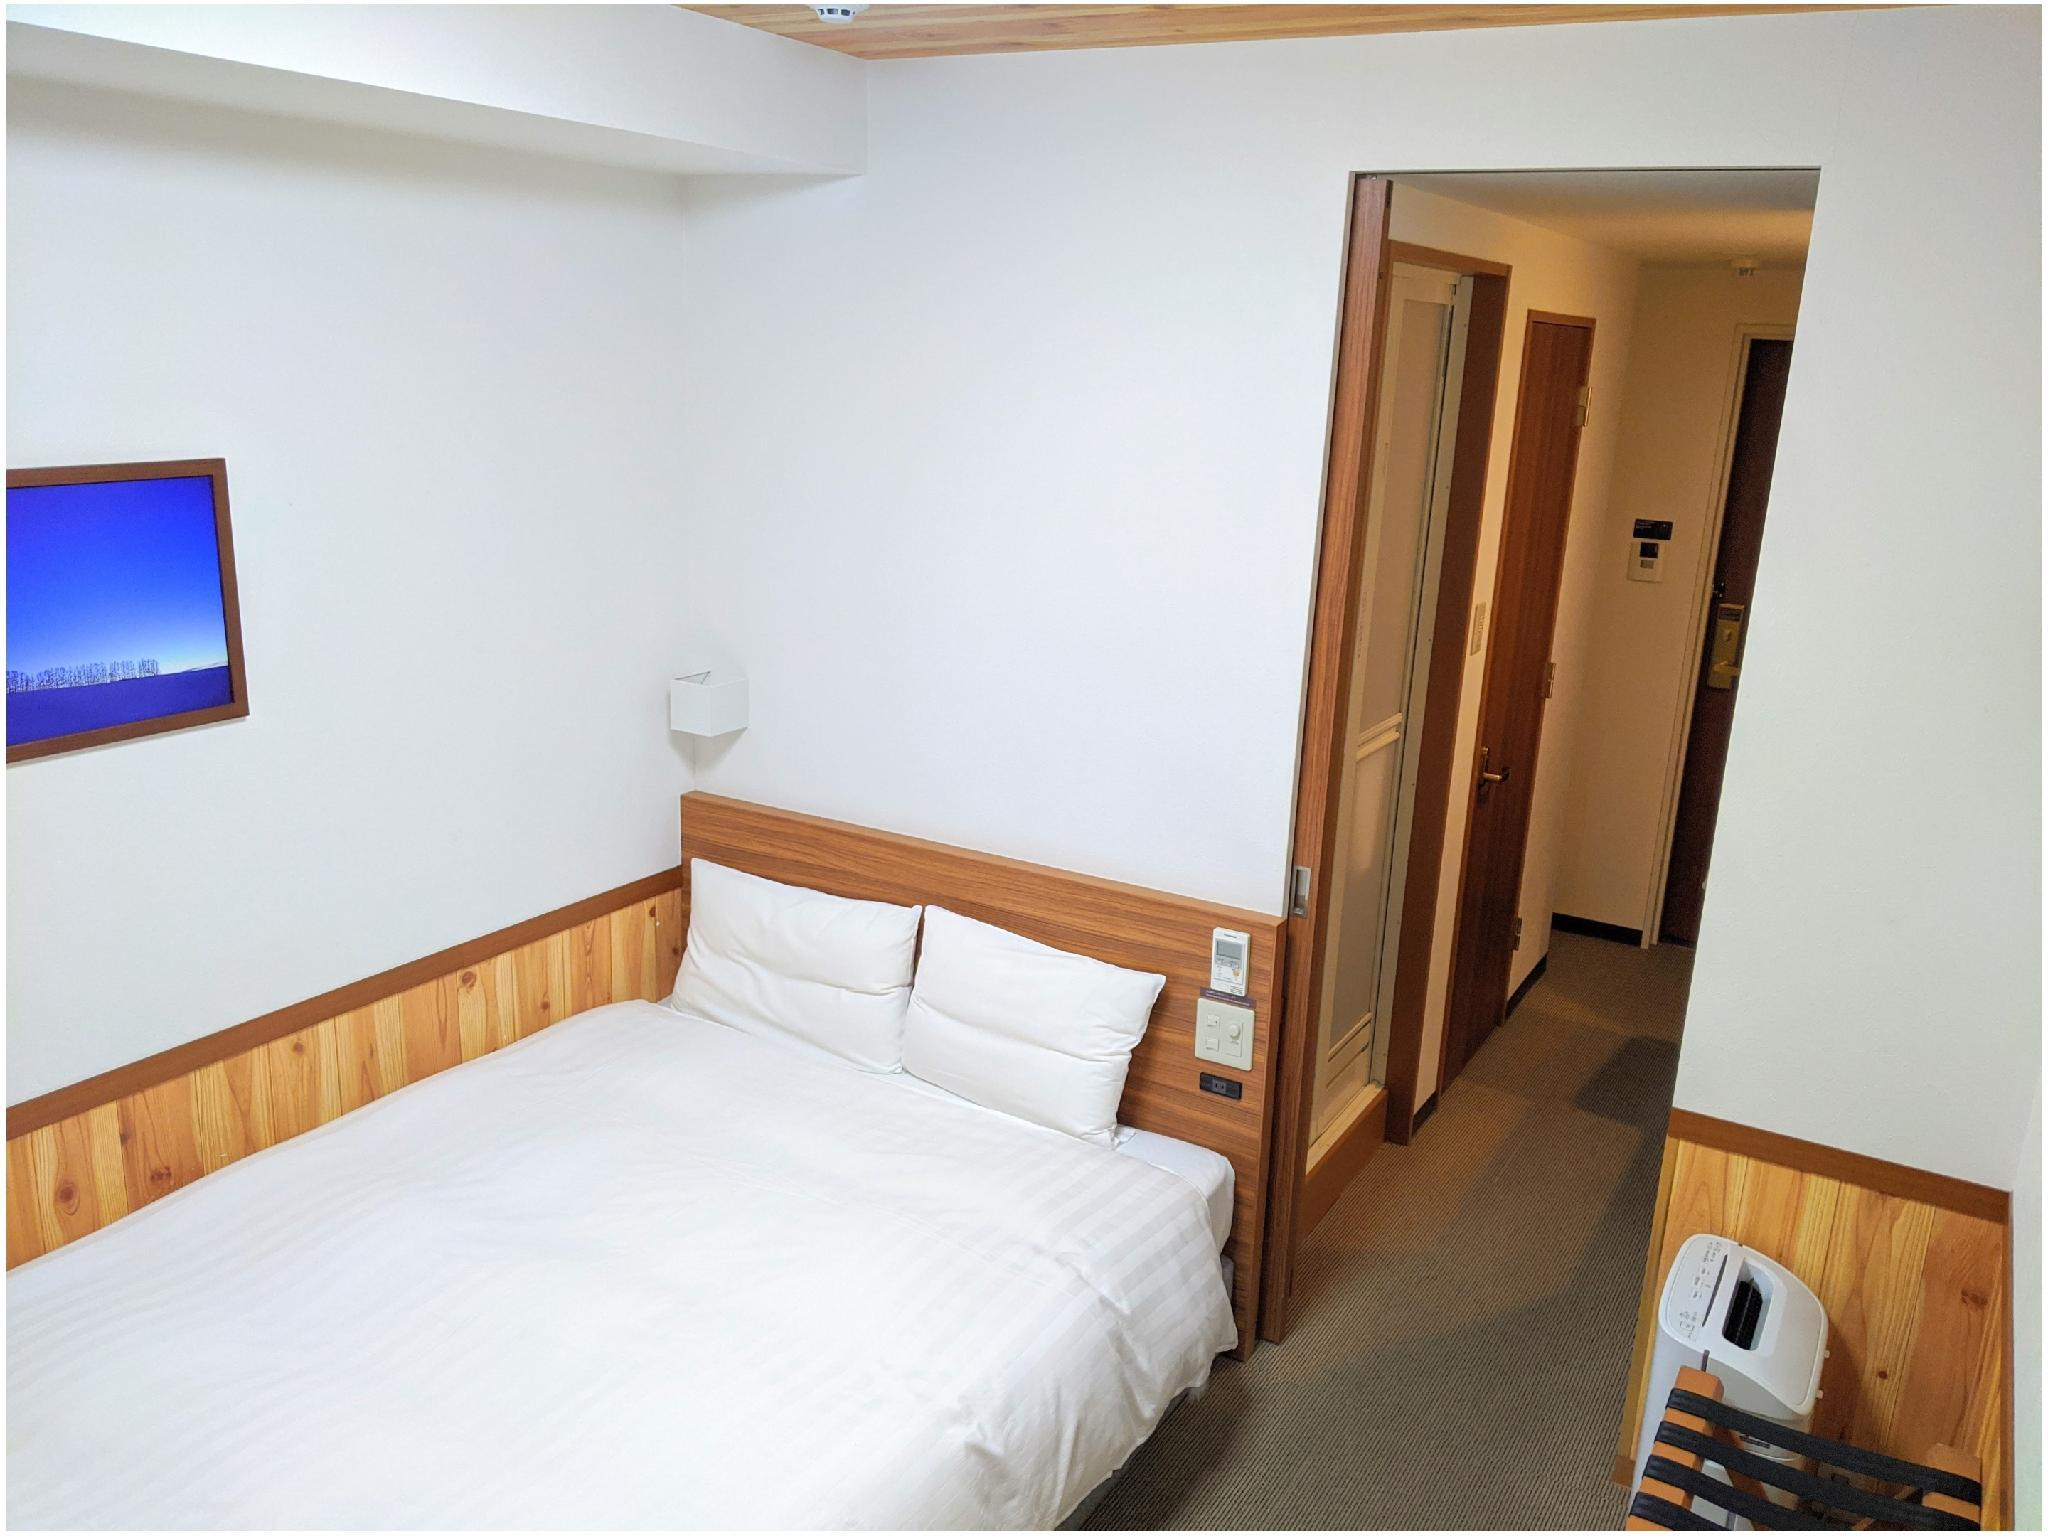 더블룸(샤워부스만) (Double Room*Has shower, no bath in room)